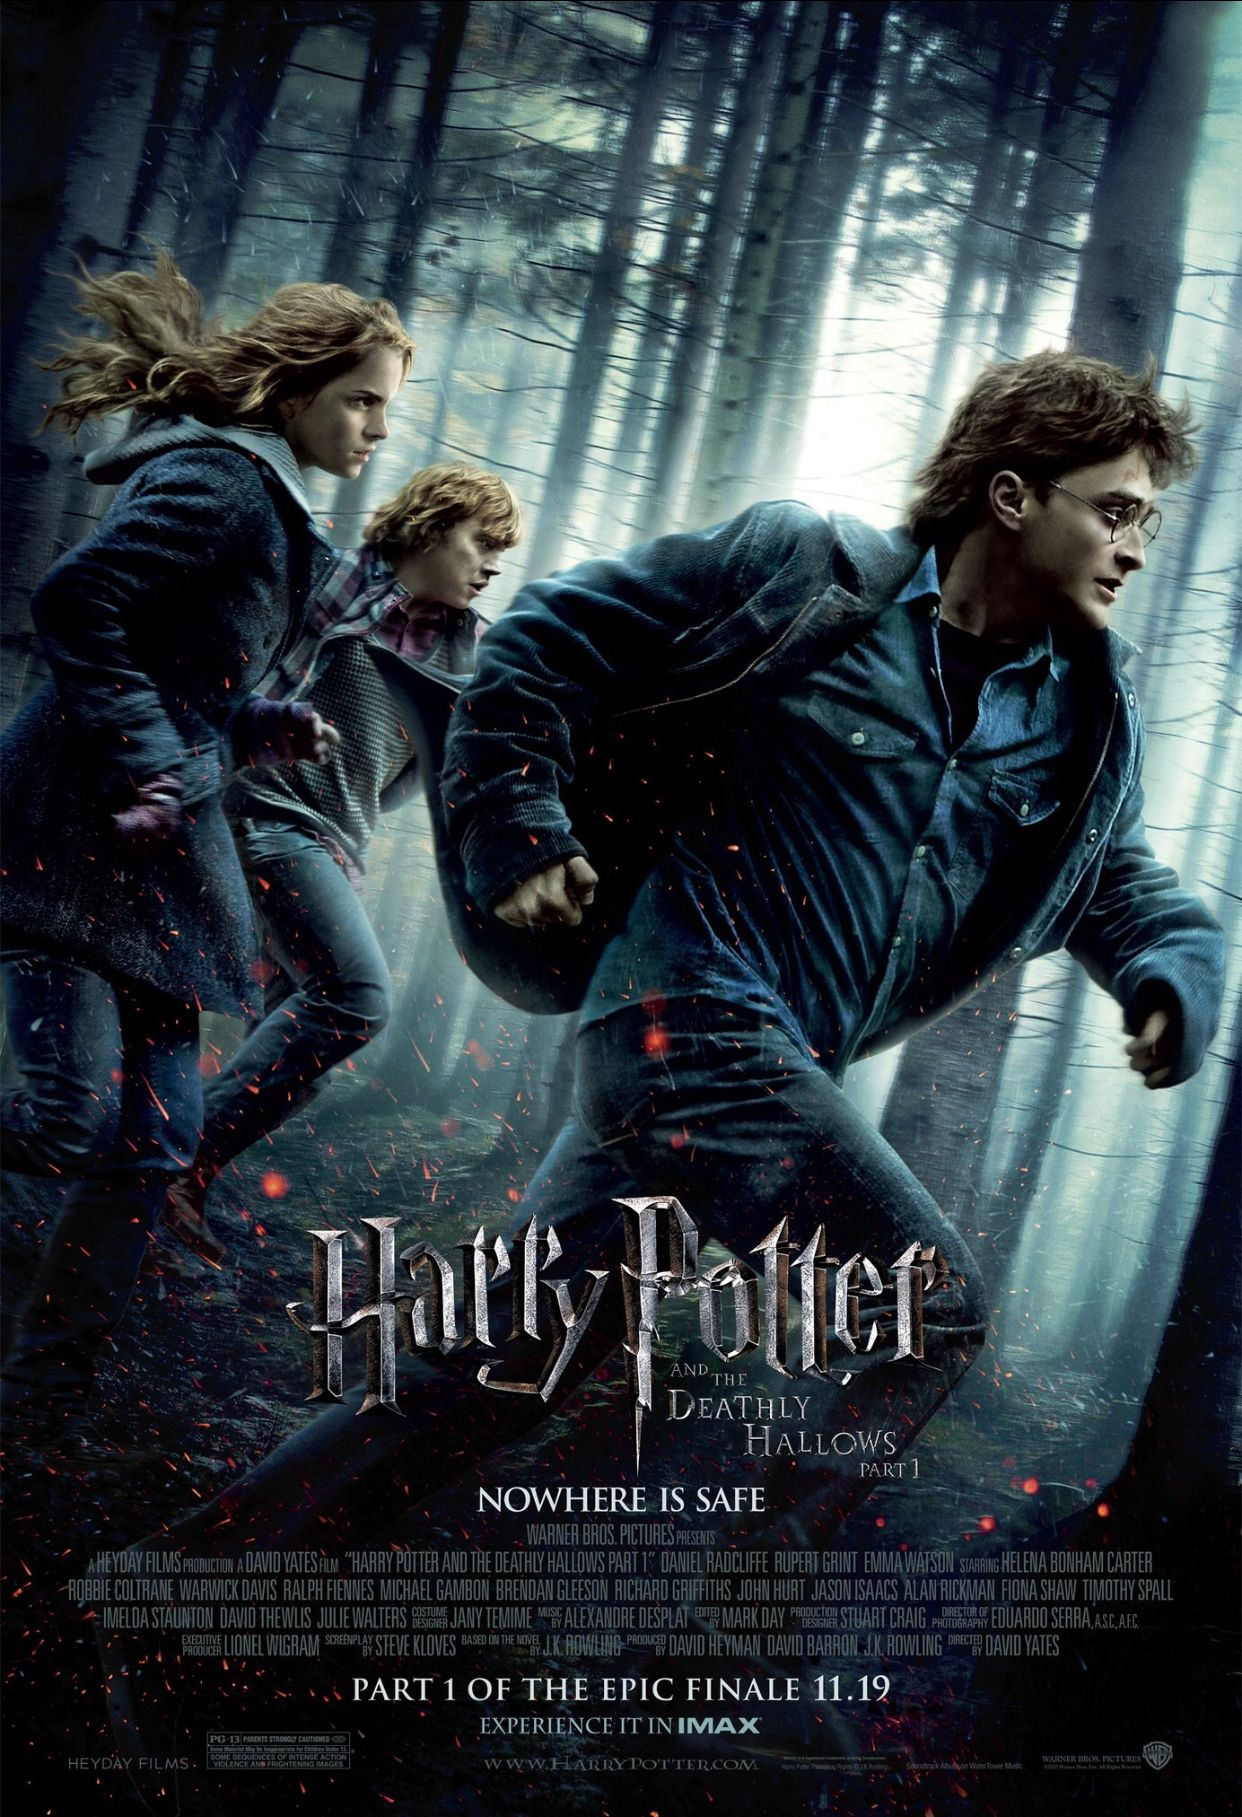 Pin By Rashaanbyrd On Film Posters Harry Potter Movie Posters Harry Potter Movies Deathly Hallows Part 1